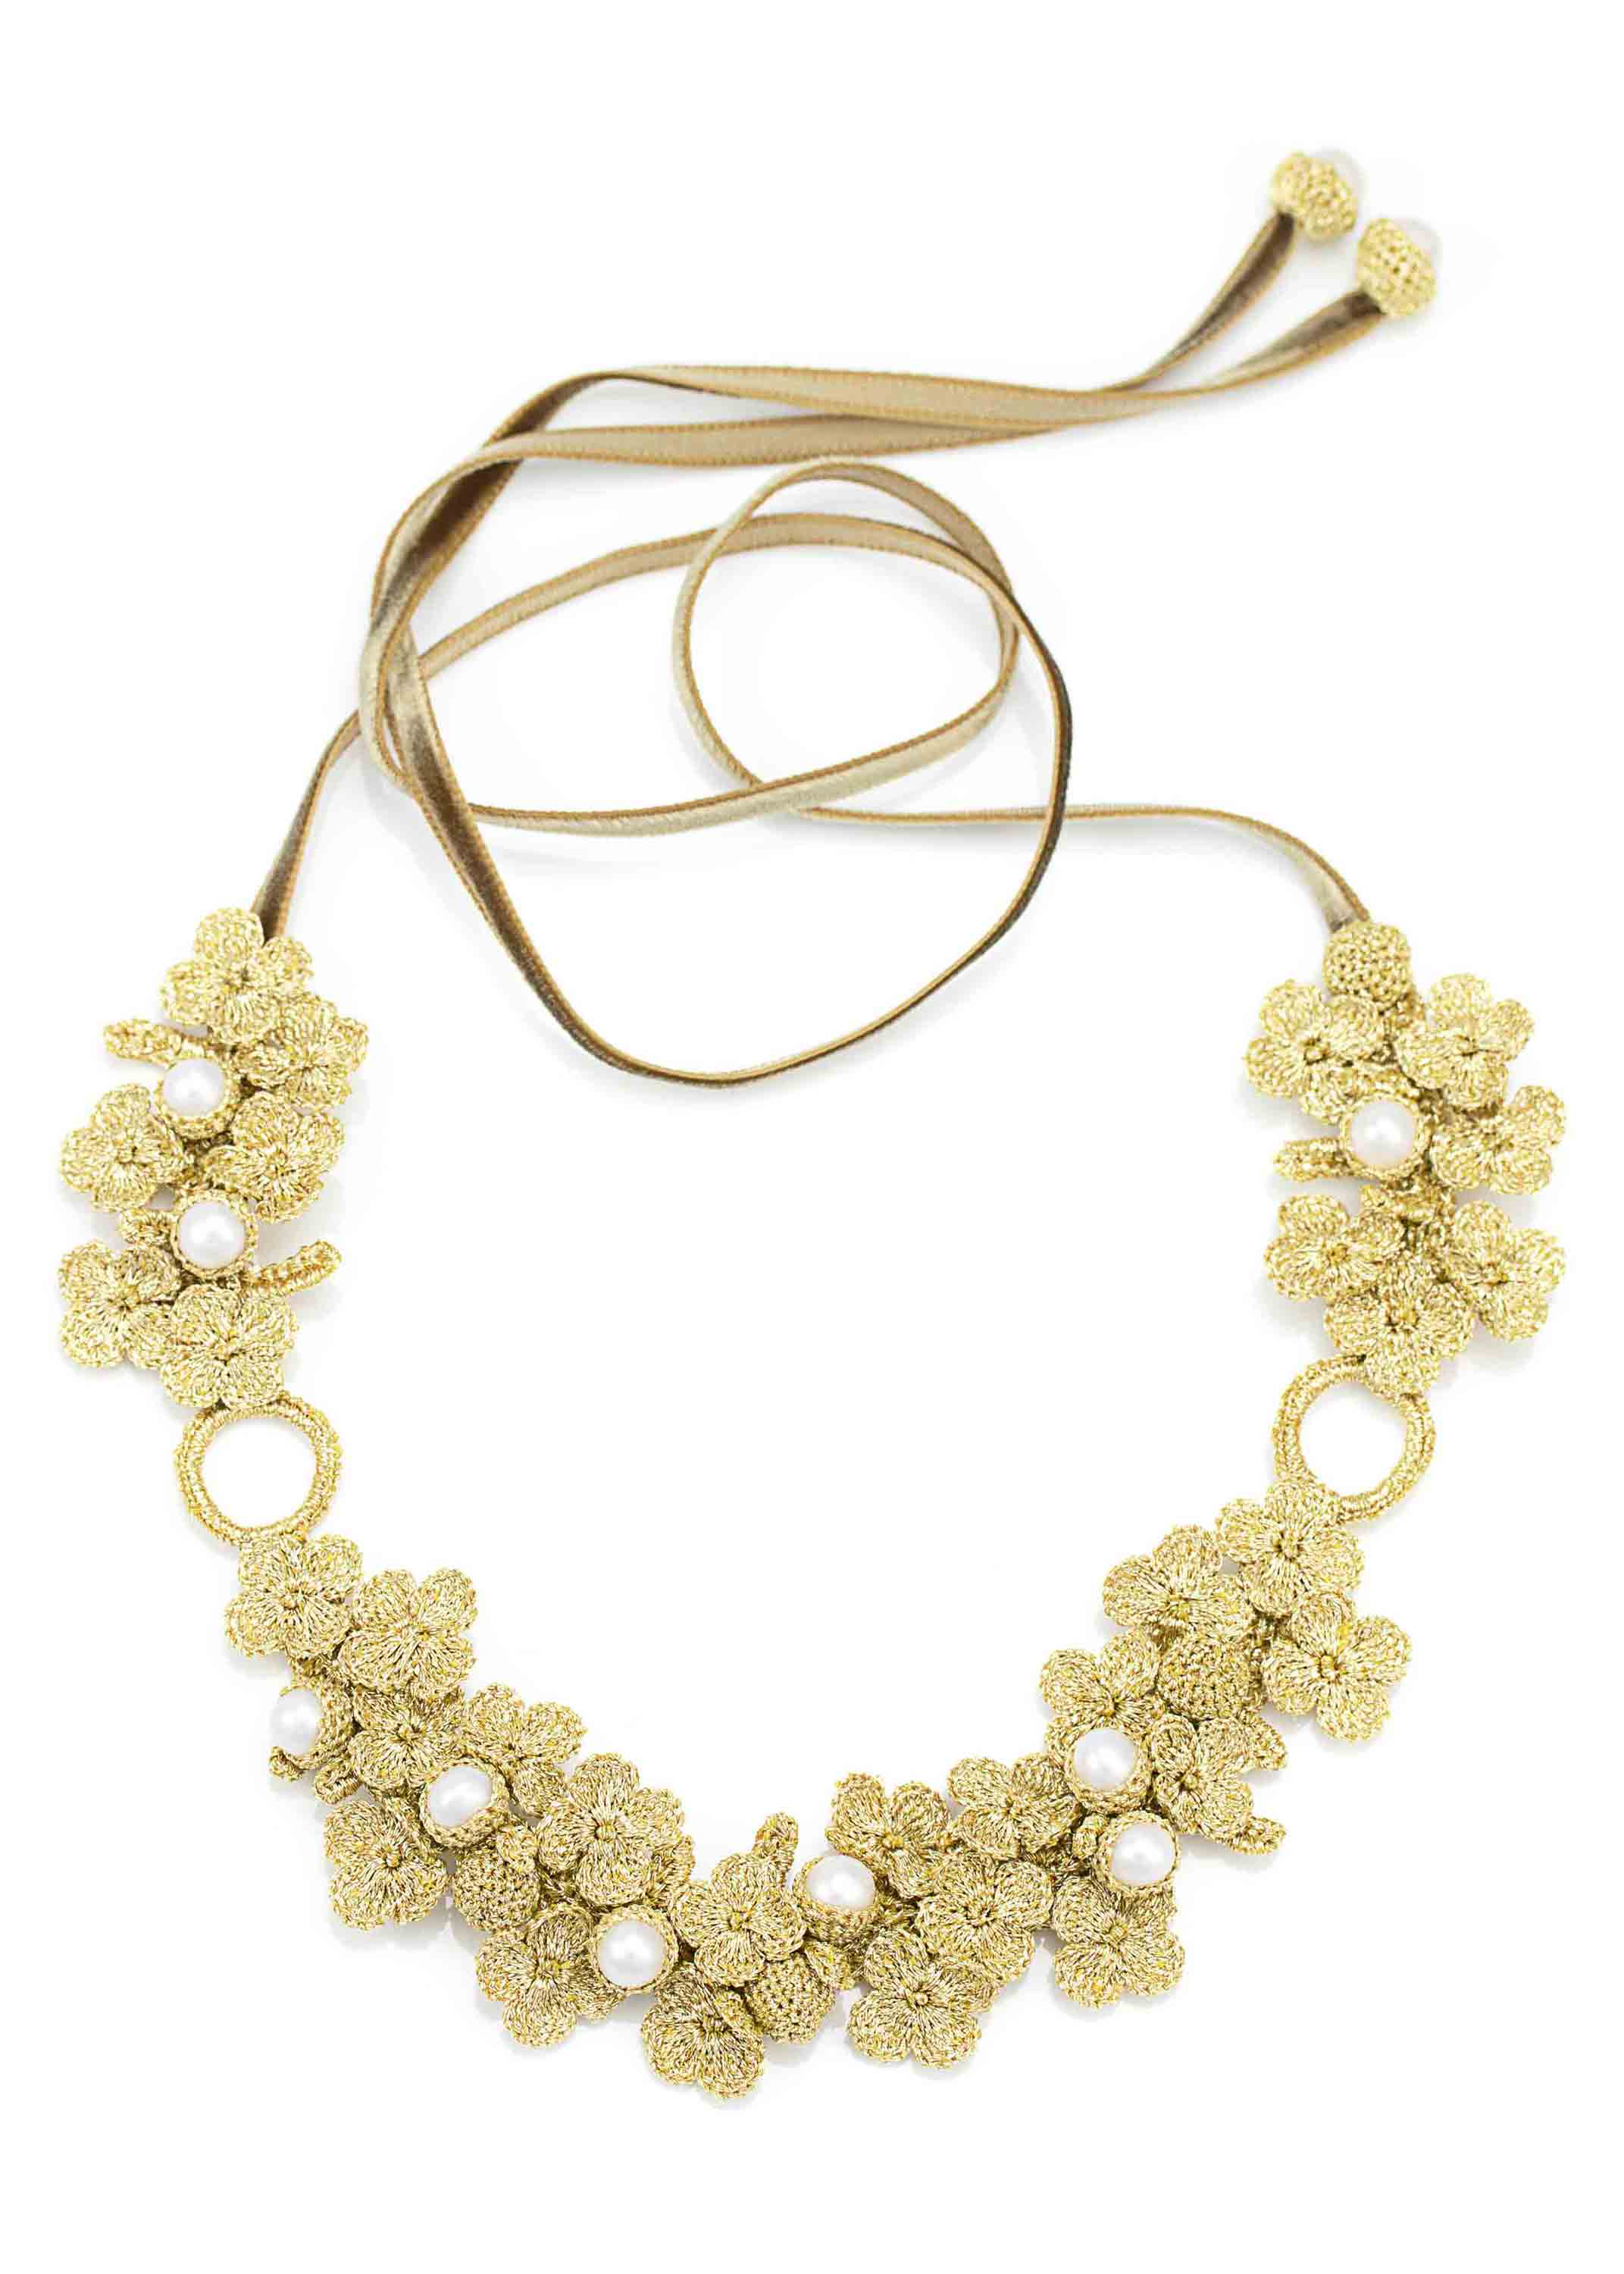 Atelier Godolé Chenonceau gold necklace in pearls and flowers